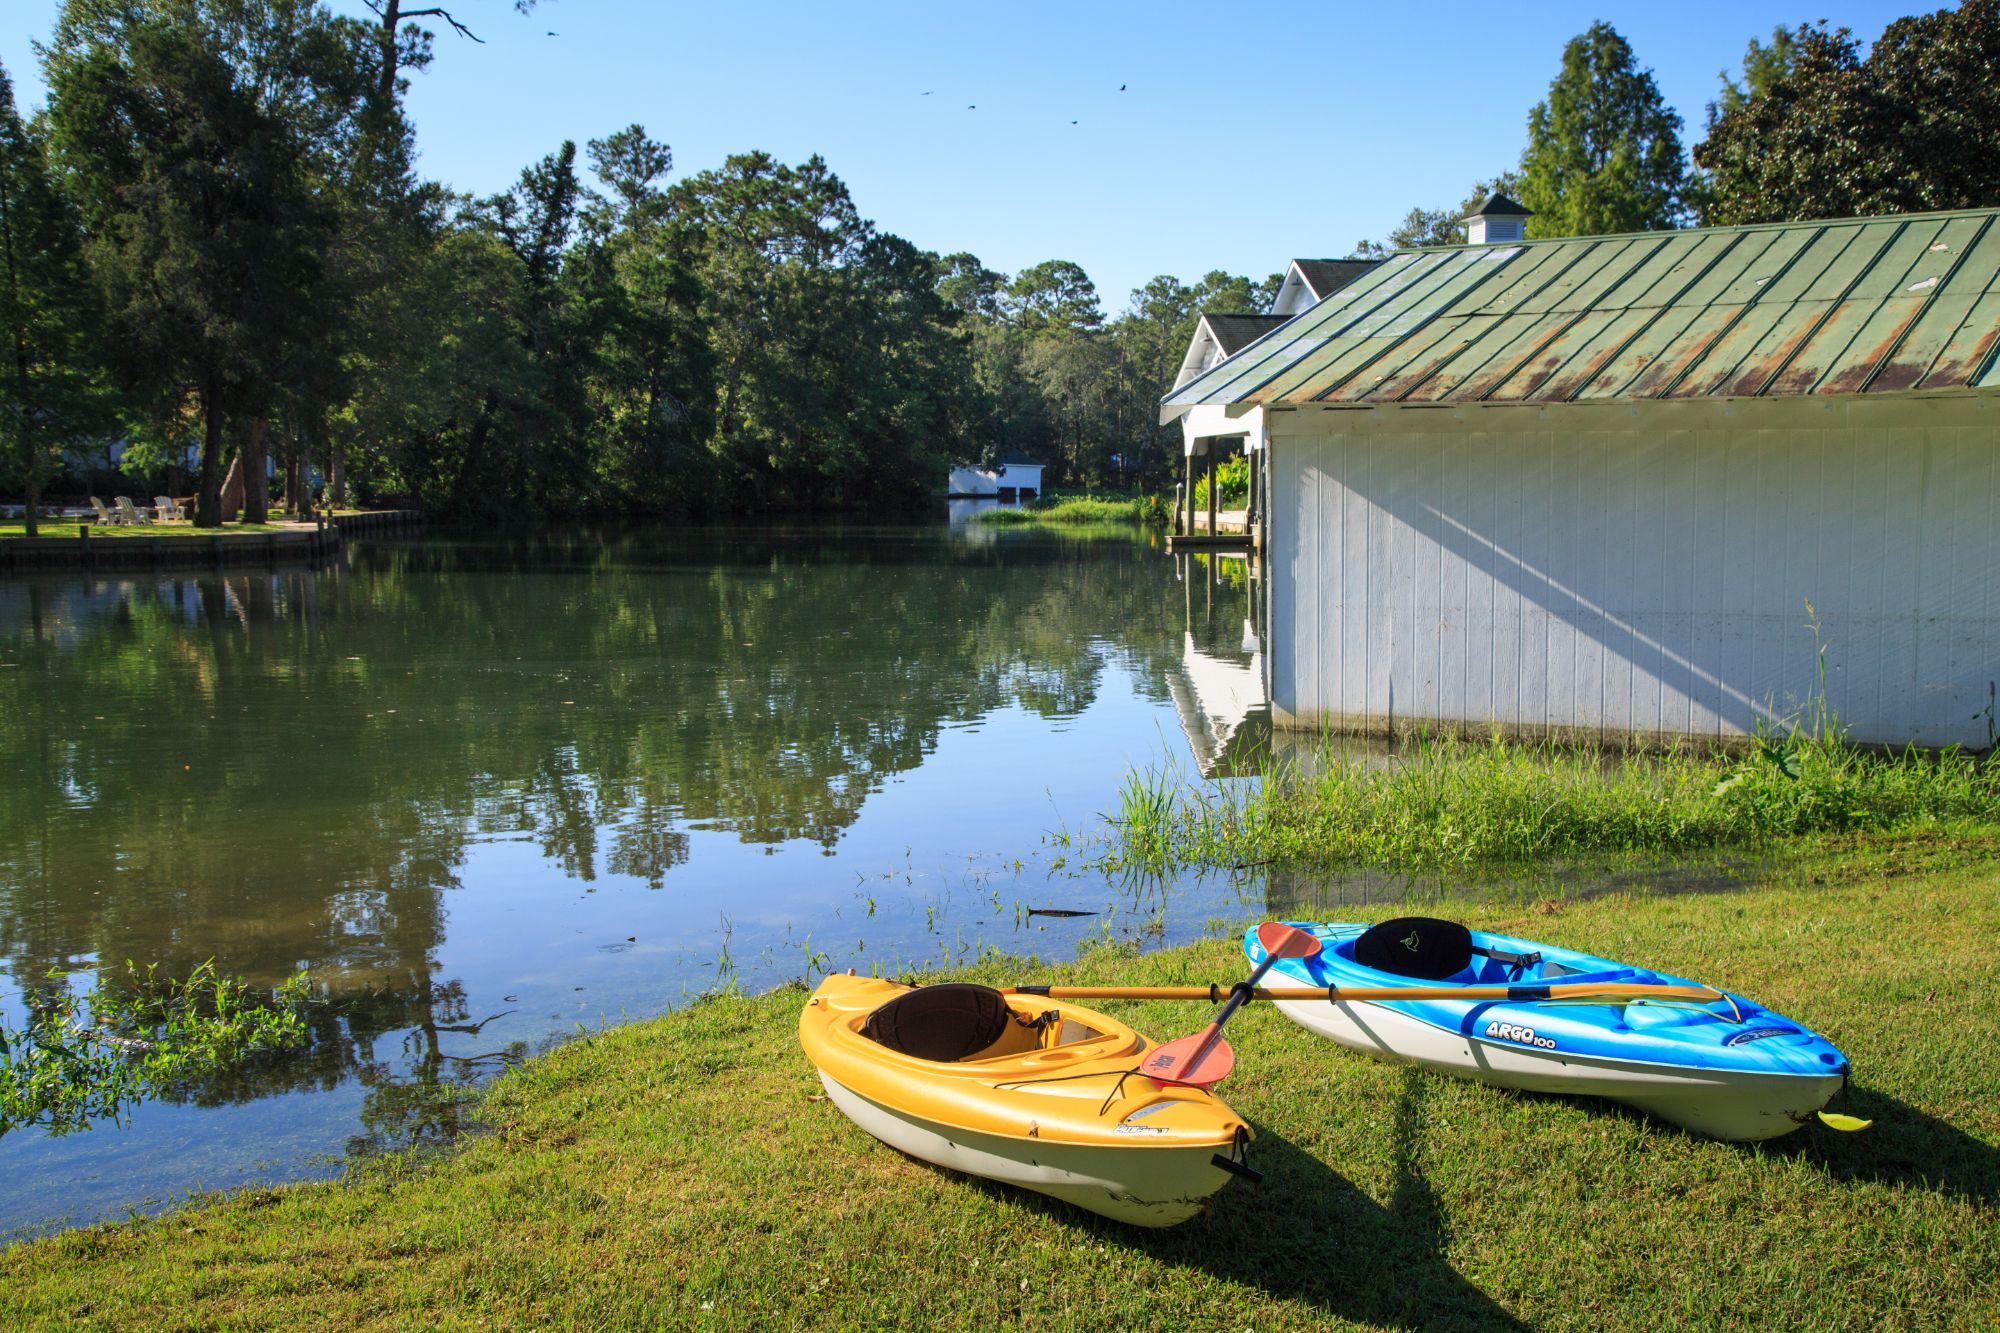 https://alabama-travel.s3.amazonaws.com/partners-uploads/photo/image/5ebda5897d74300009029e26/8-magnolia-kayaks.jpg